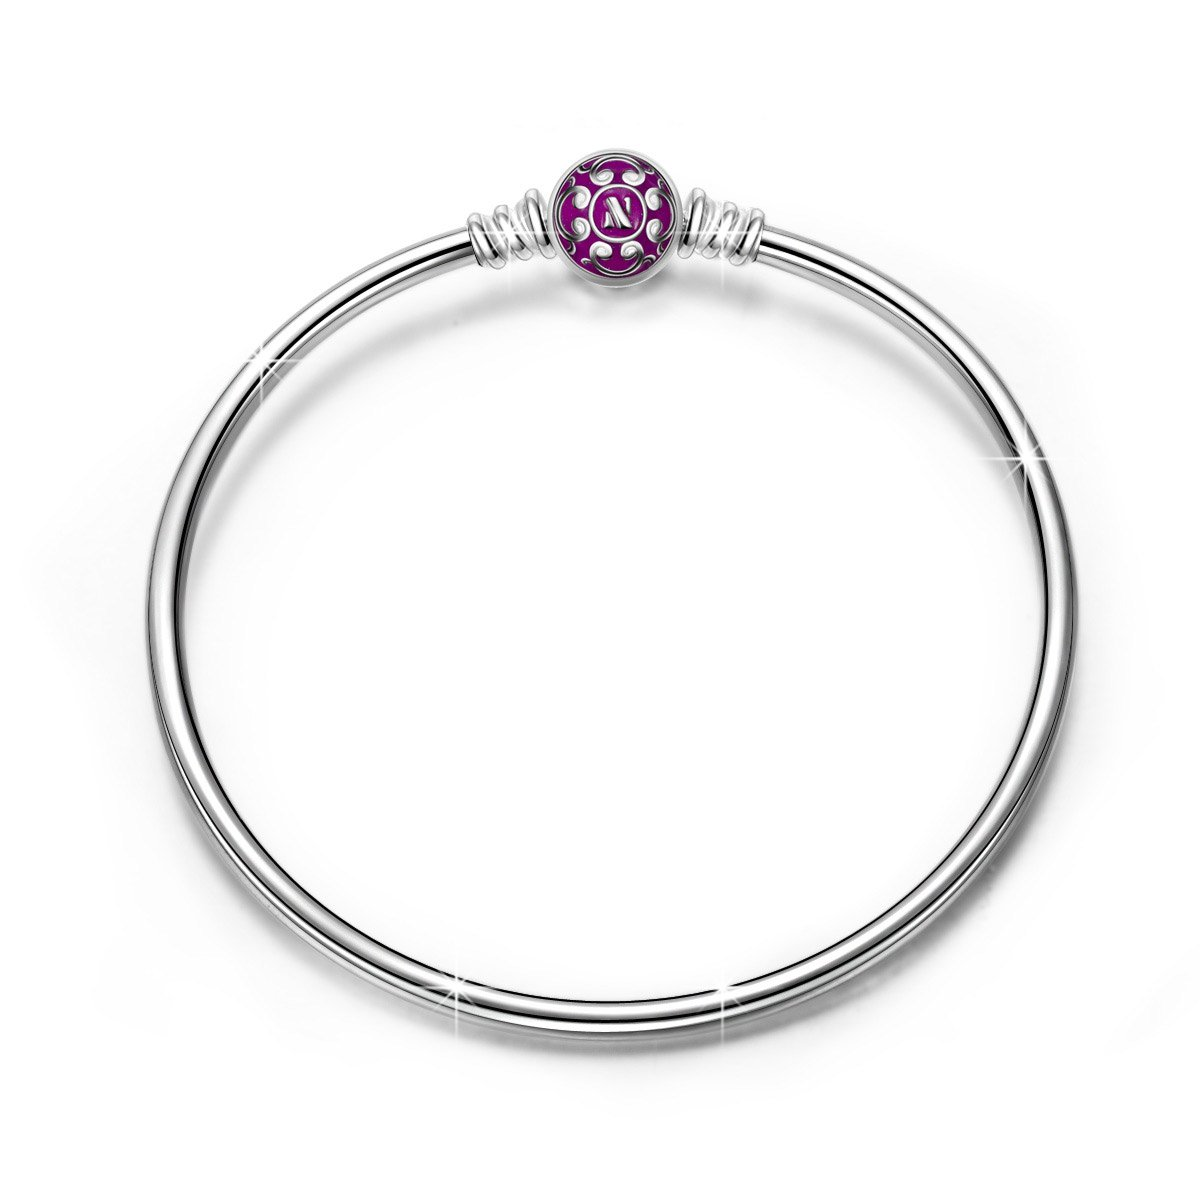 NINAQUEEN 925 Sterling Silver Bangle Bracelet with Purple Snap Clasp 7.5 Inches, Birthday Anniversary for Women Wife Bracelets for Charms Teen Girls